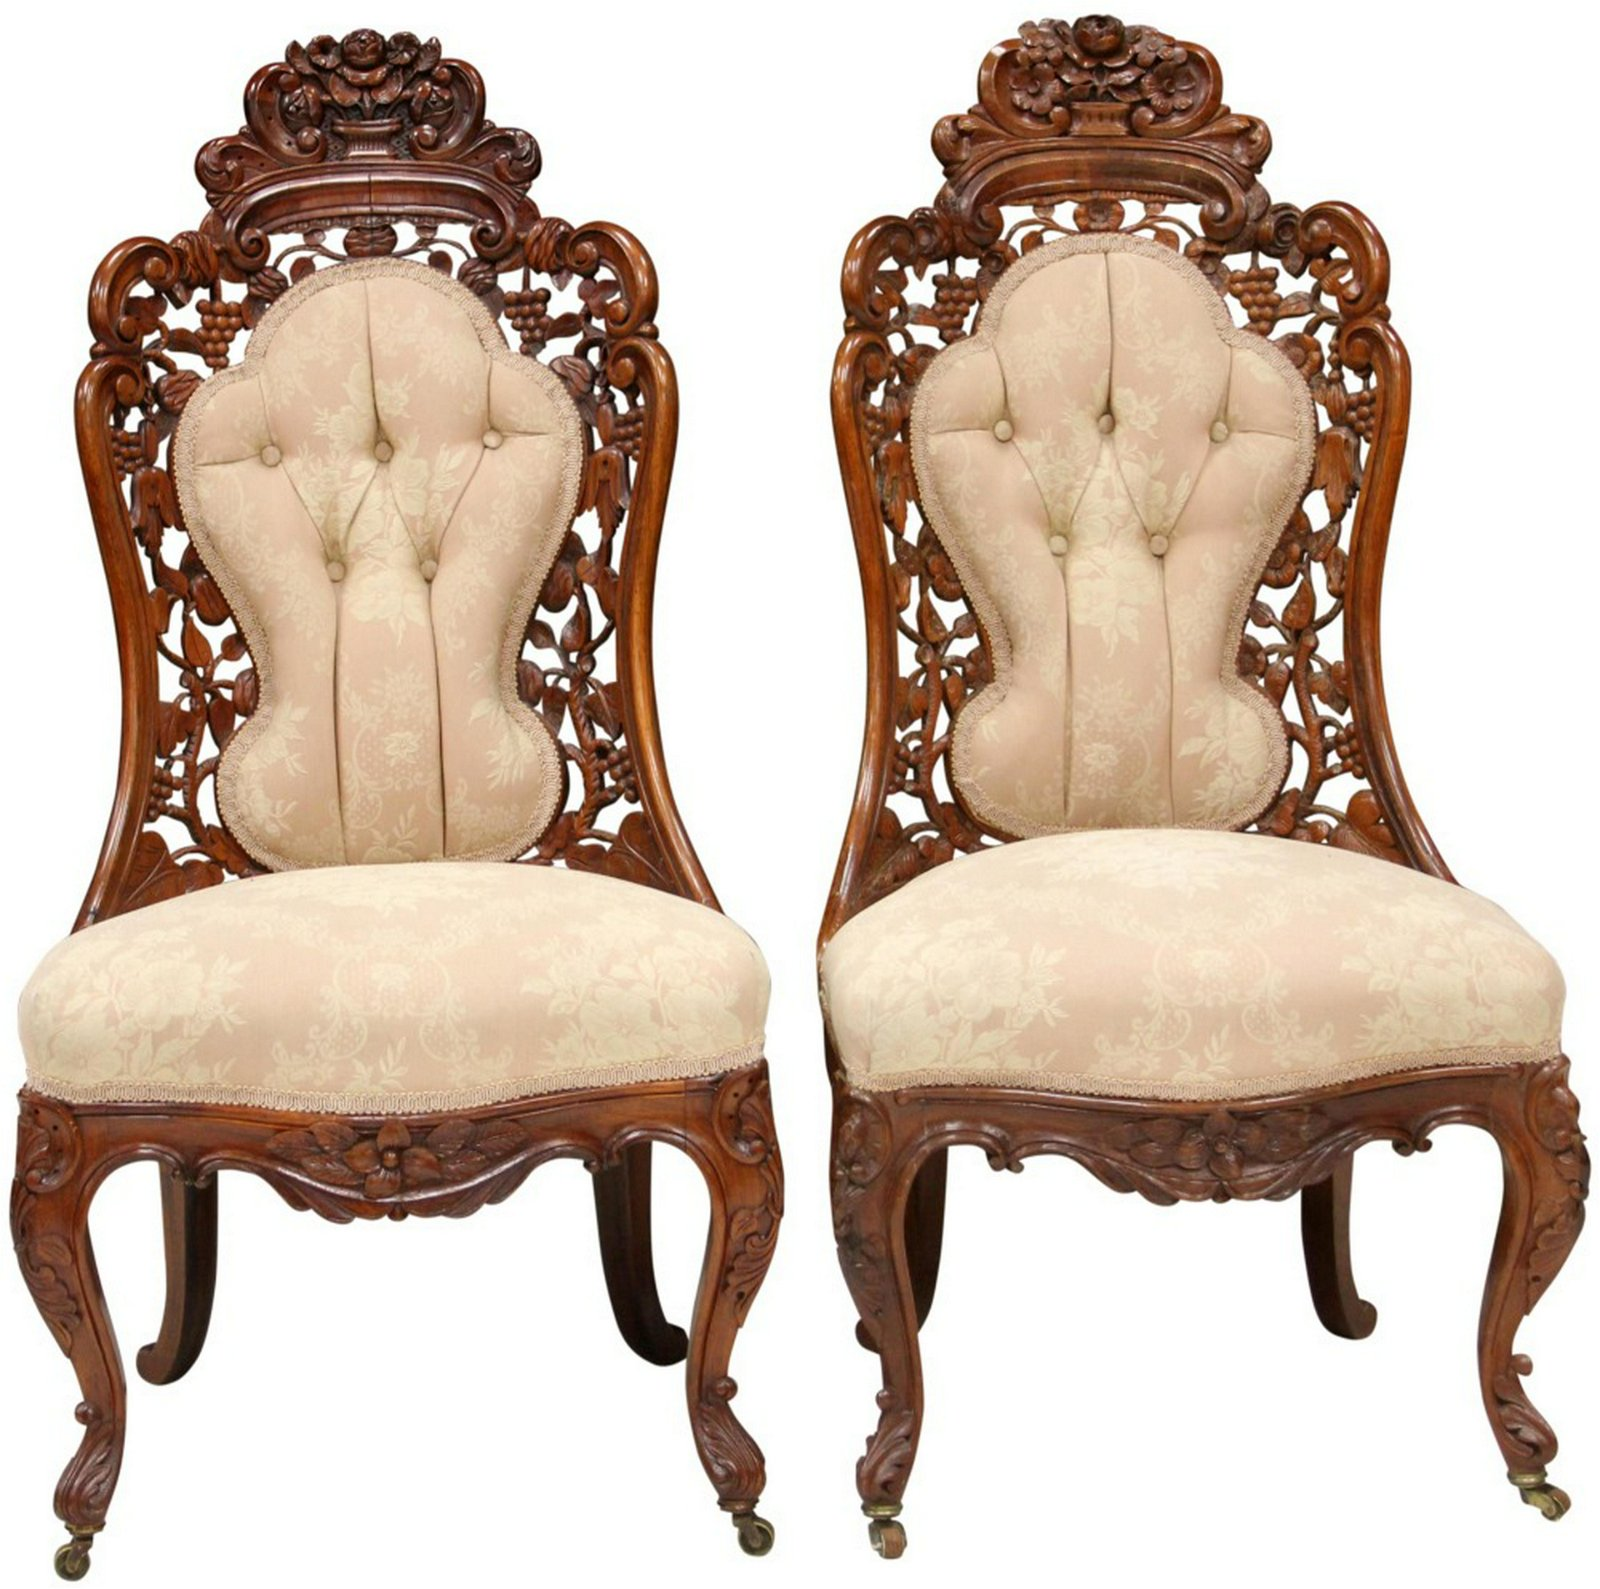 PAIR OF BELTER ROSEWOOD PARLOR CHAIRS